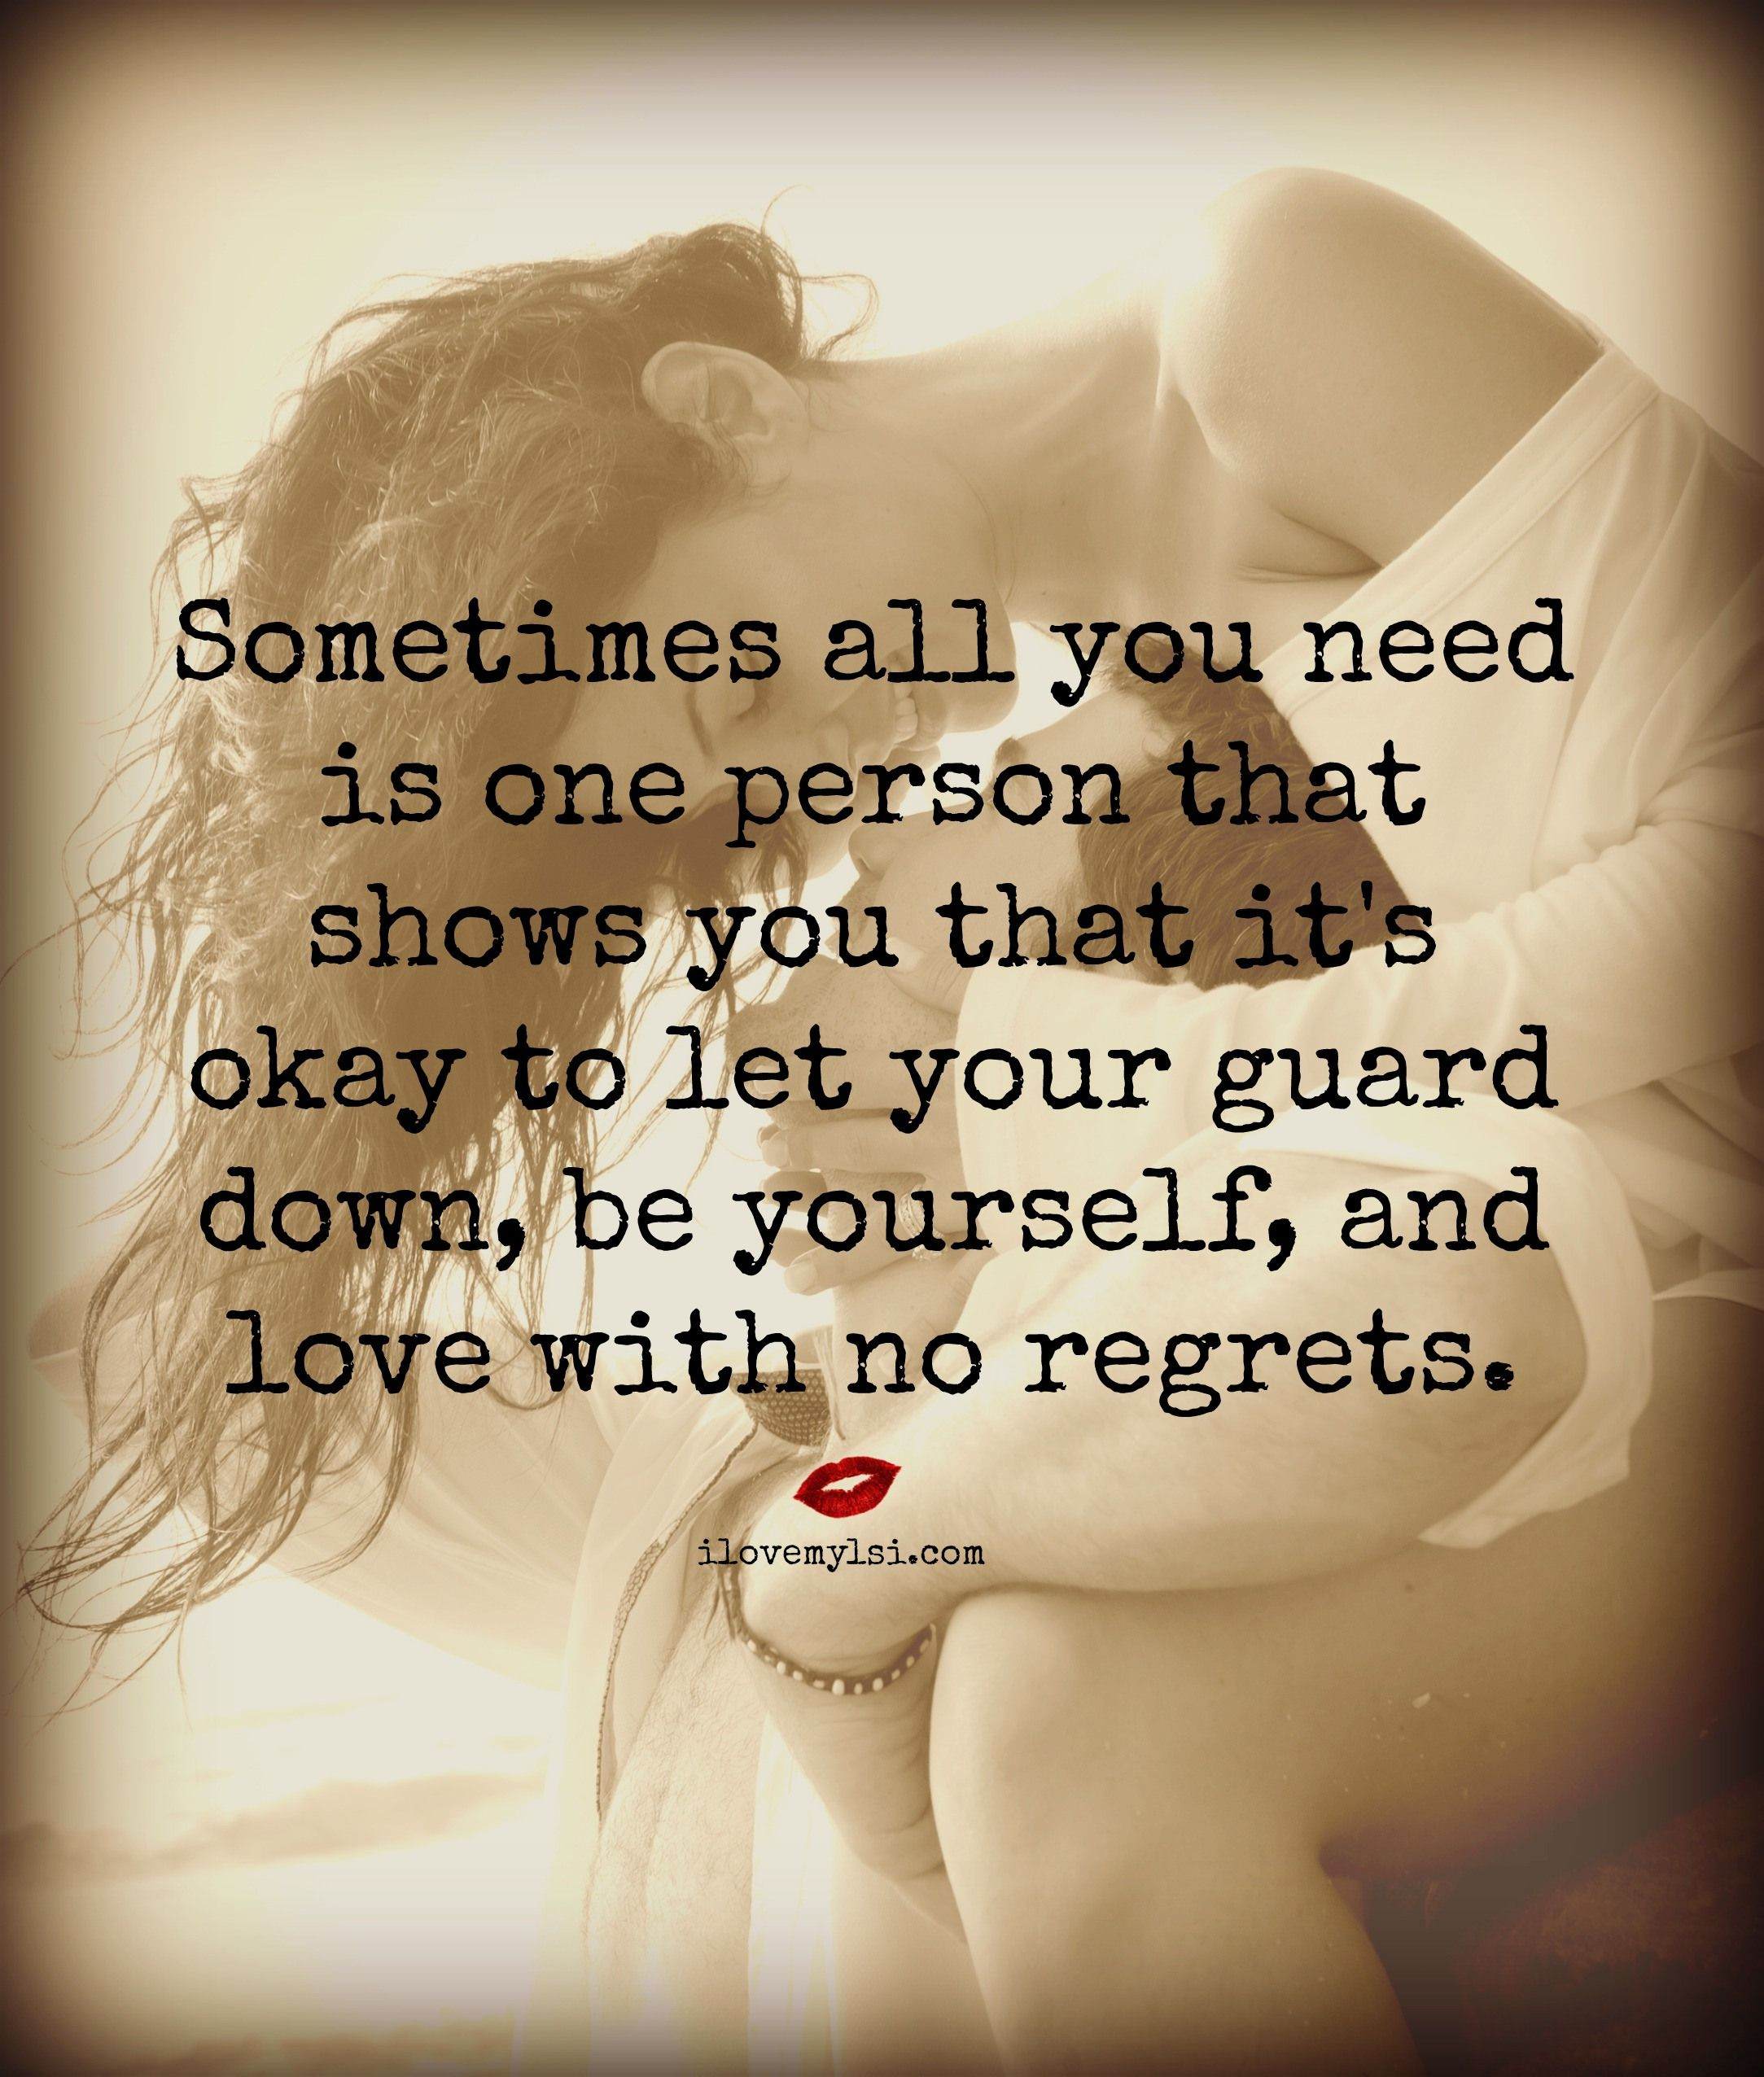 Let Your Guard Down Be Yourself And Love With No Regrets Letting Your Guard Down Quotes Love Quotes